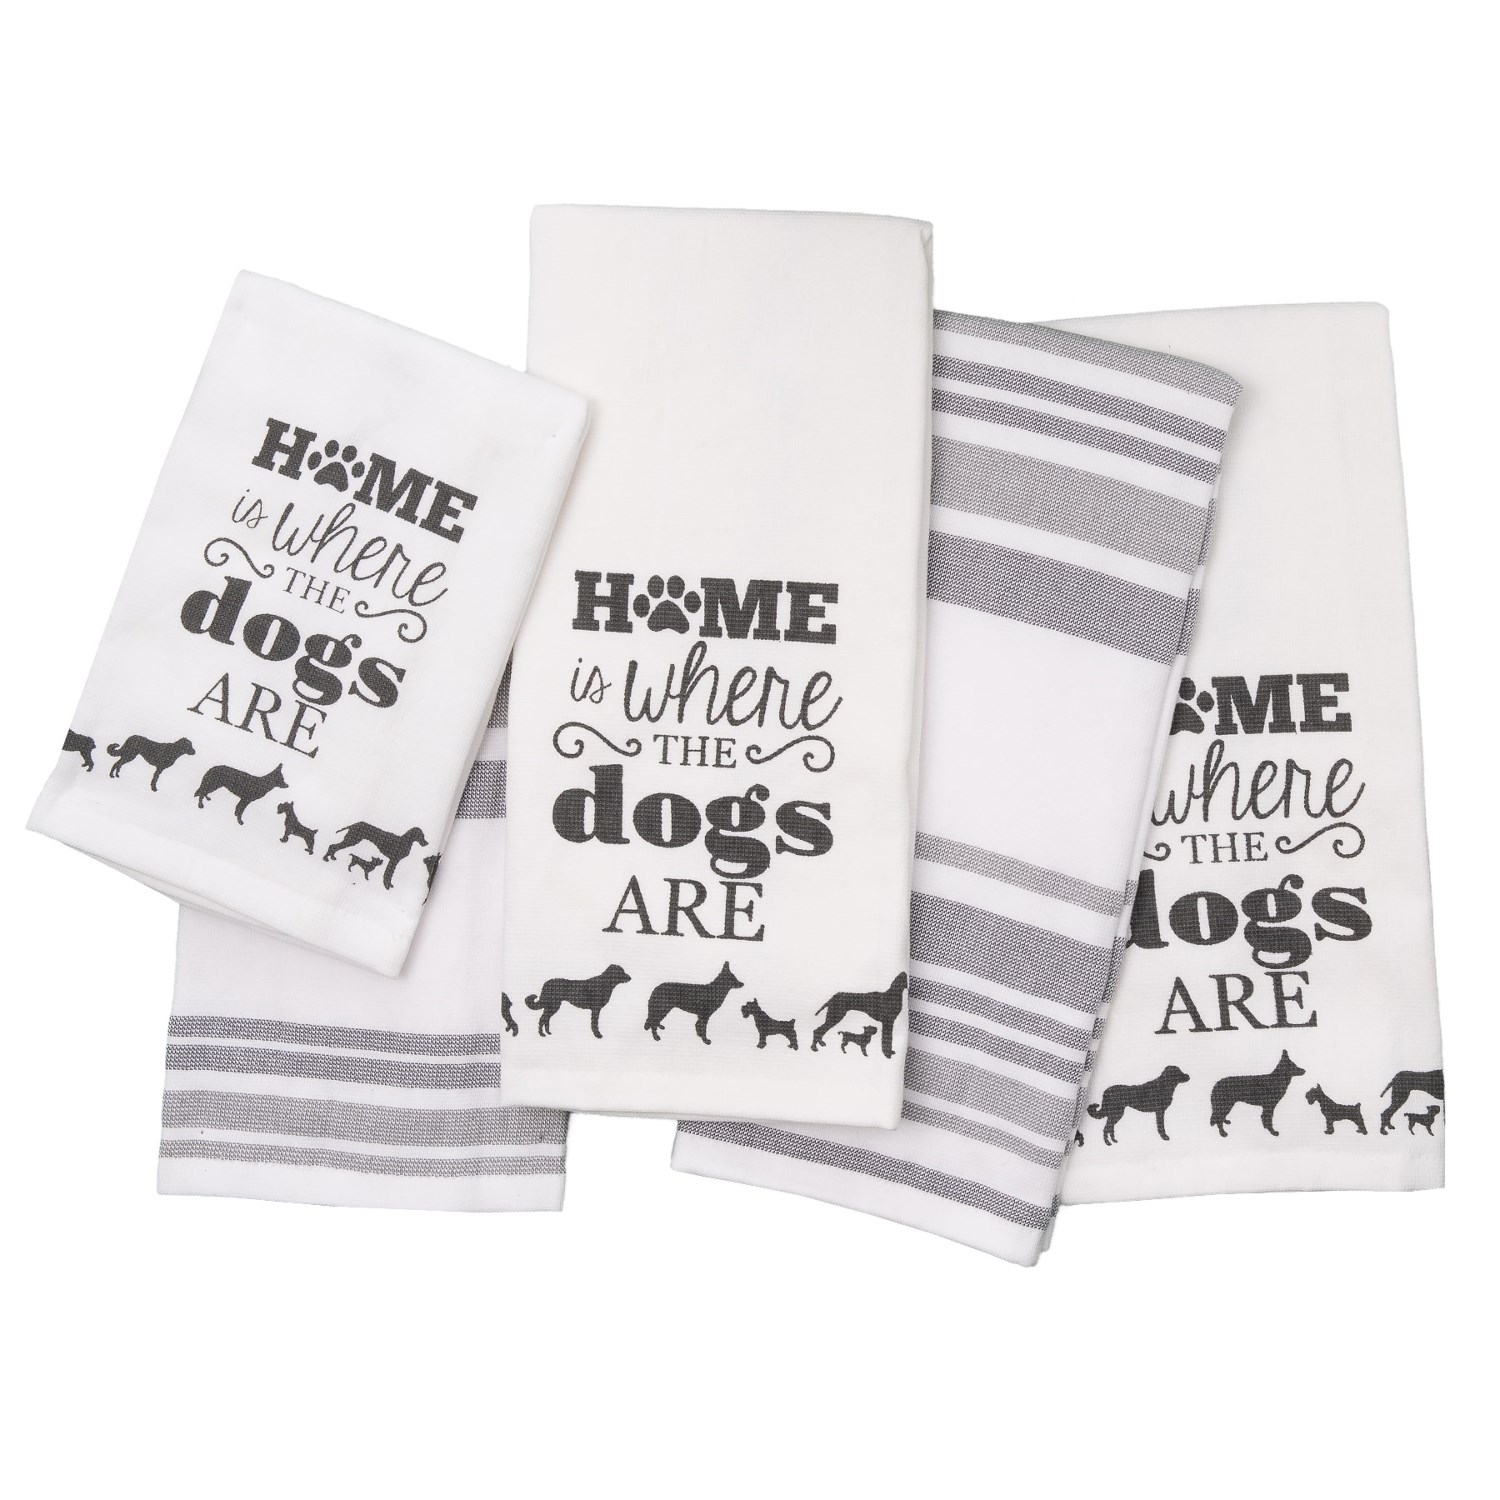 Casaba Home Sweet Home Kitchen Towels and Bar Mops - Set of 5